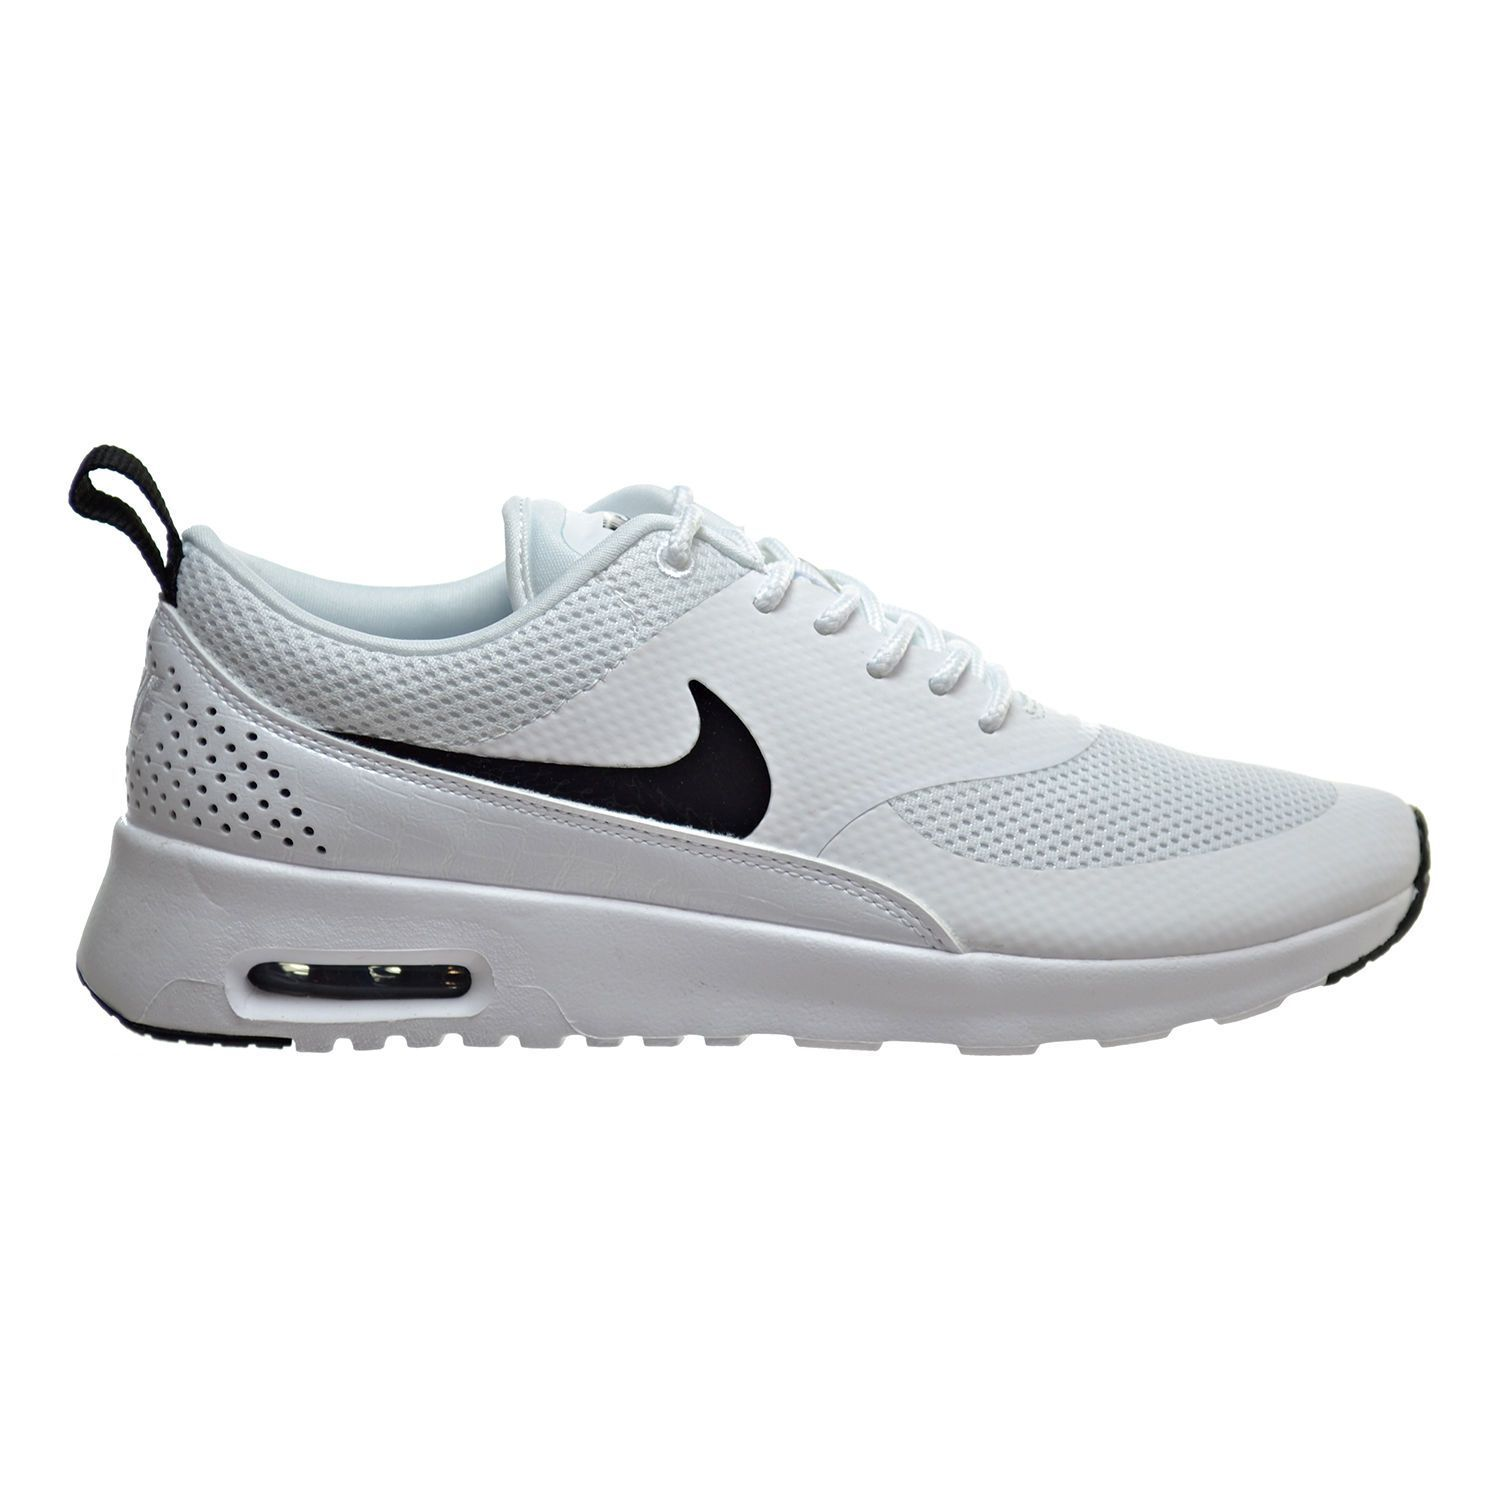 new style f2f30 641ac Nike Air Max Thea Women S Shoes White Black 599409-103